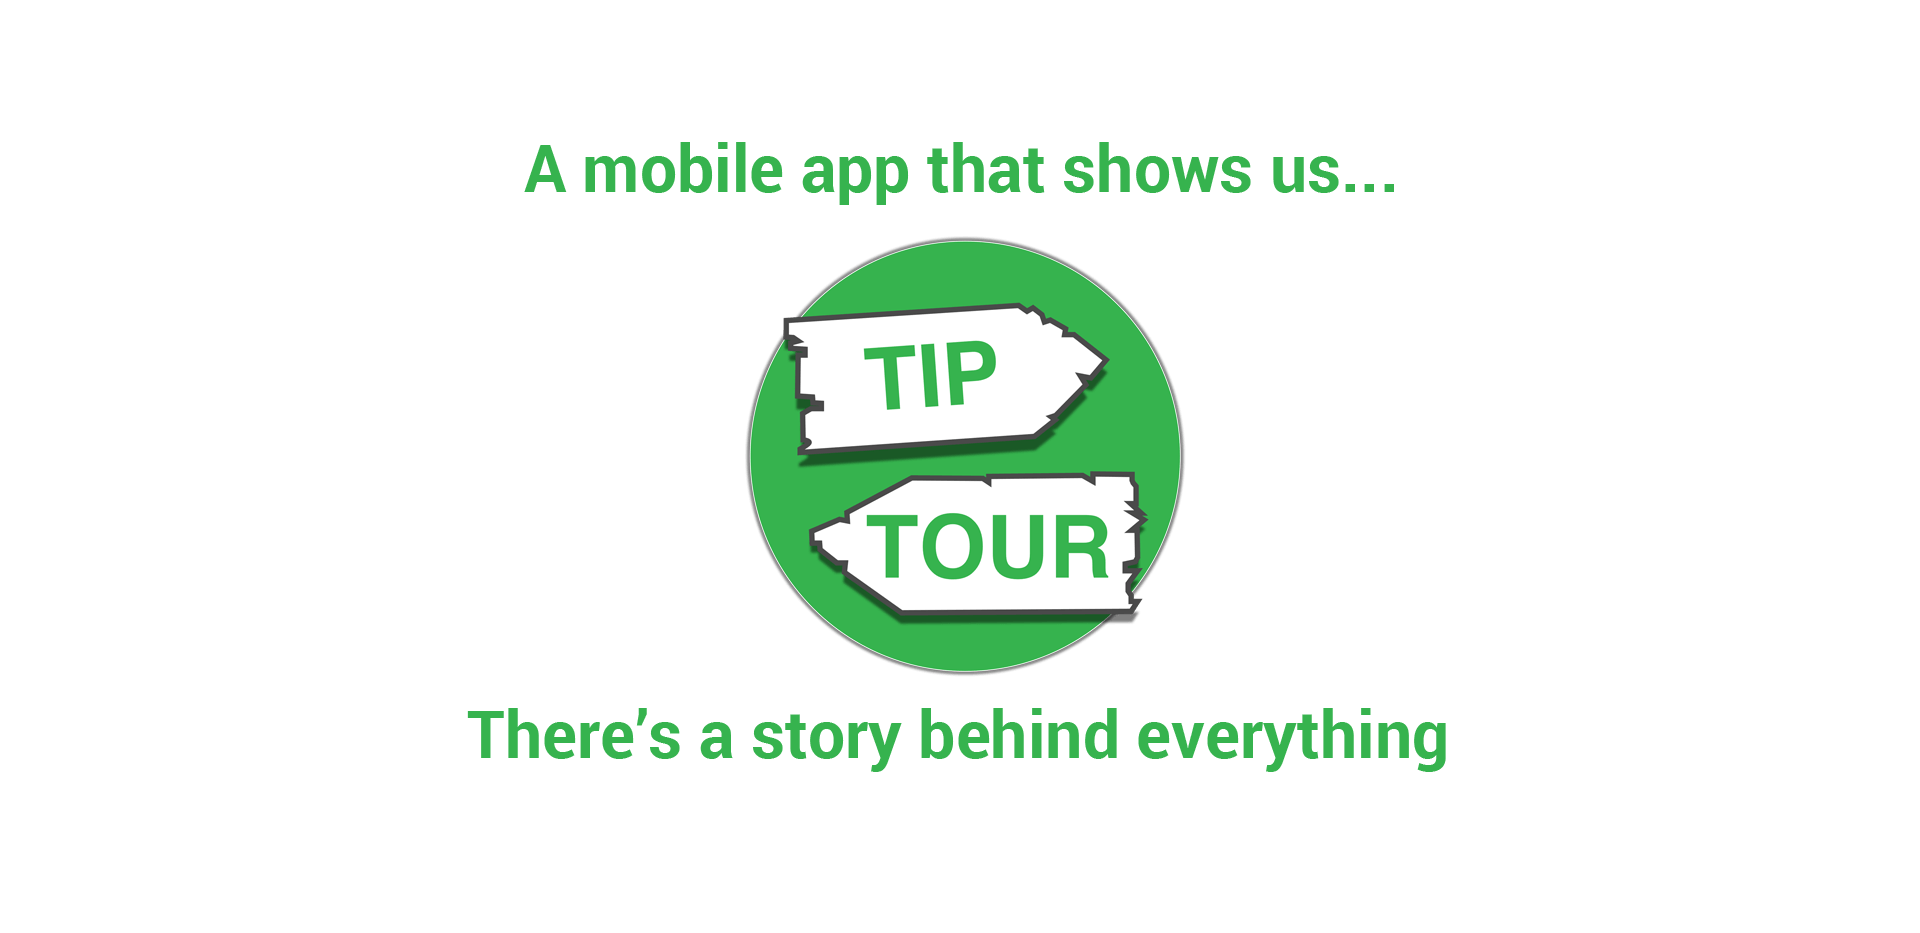 A mobile app that shows us - There's a story behind everything